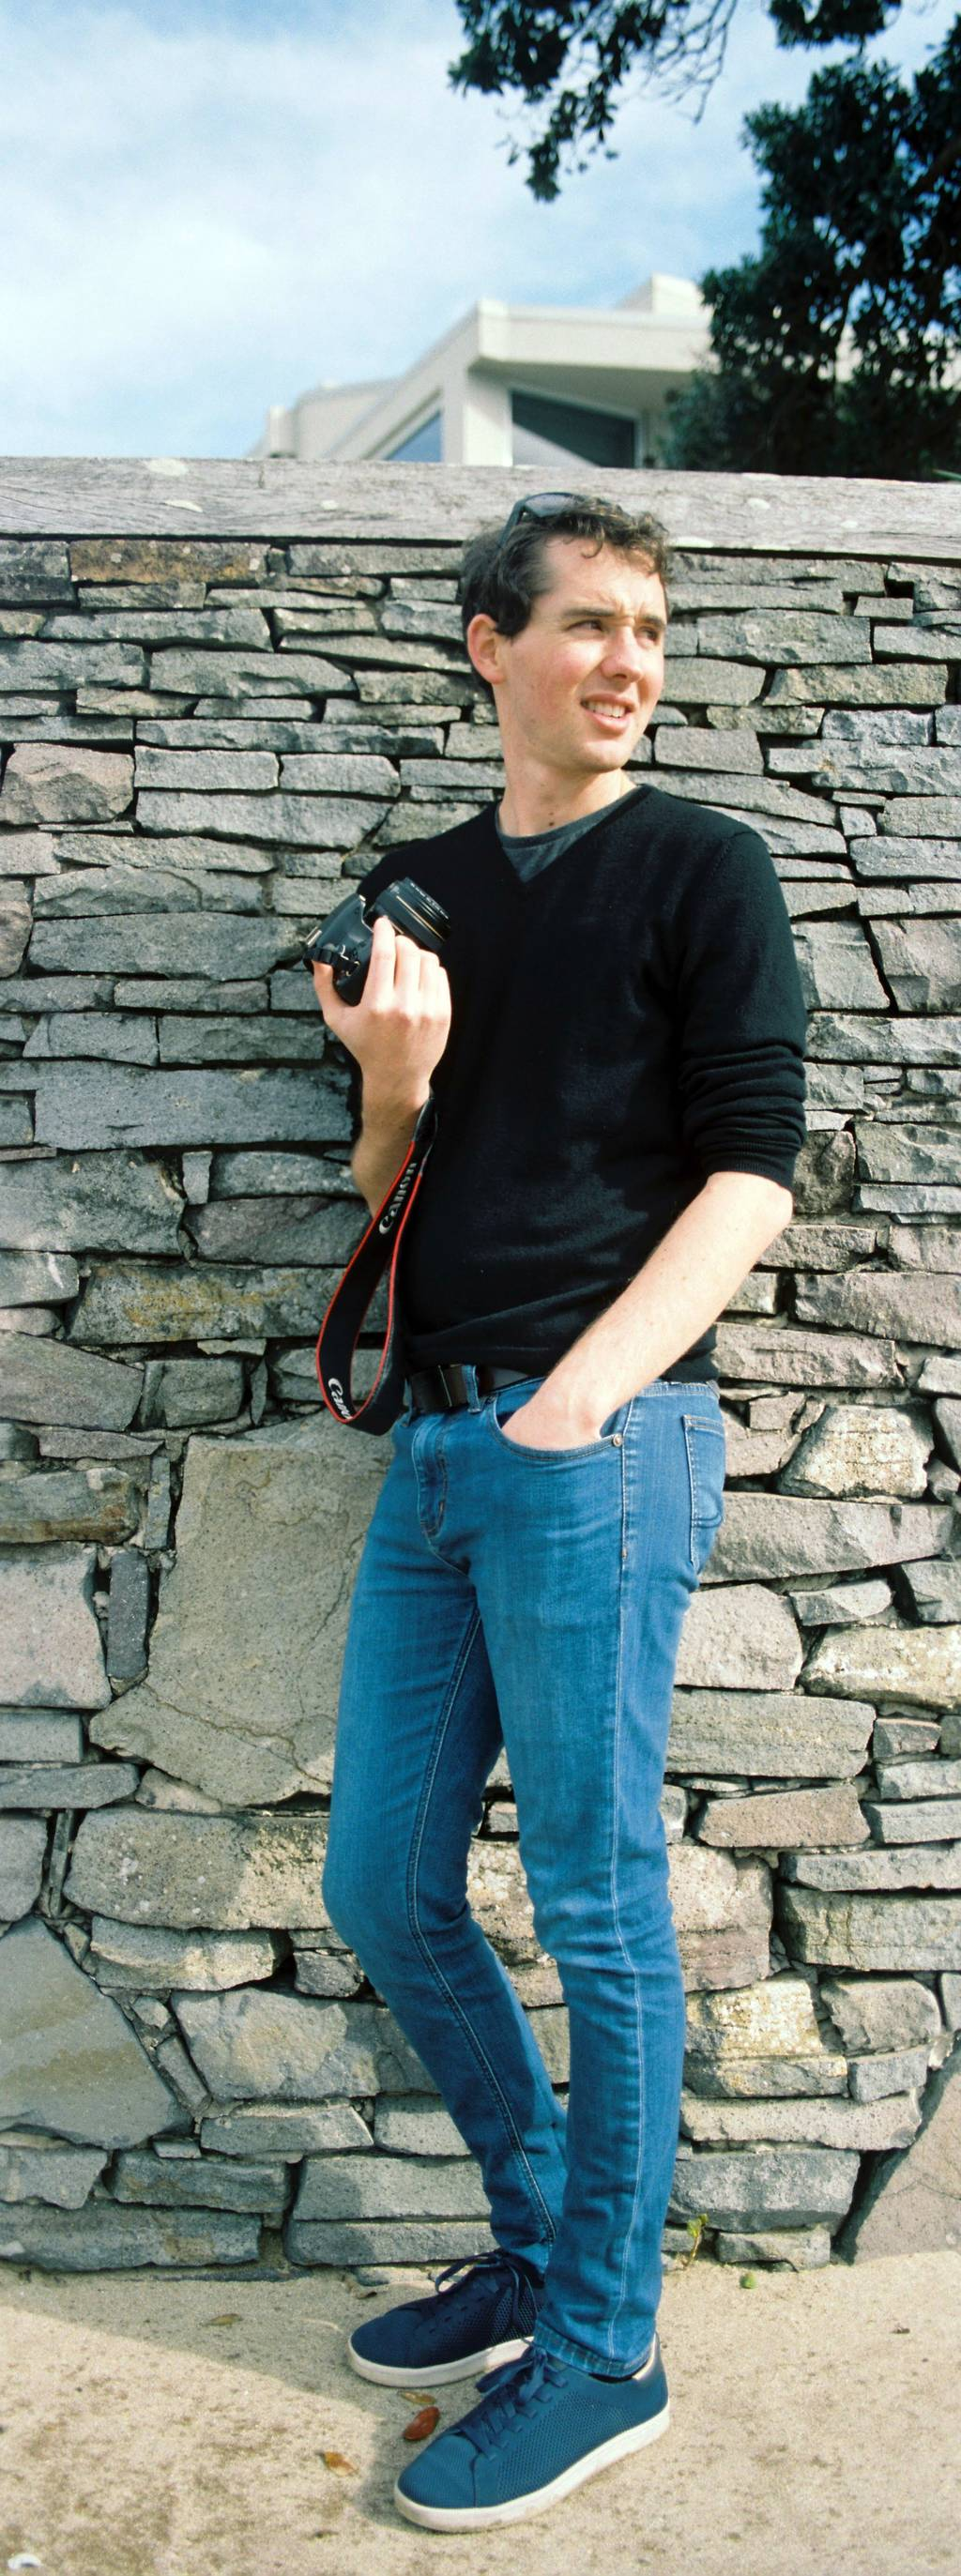 Vertical panorama of Byron posing with his camera up against a stone wall